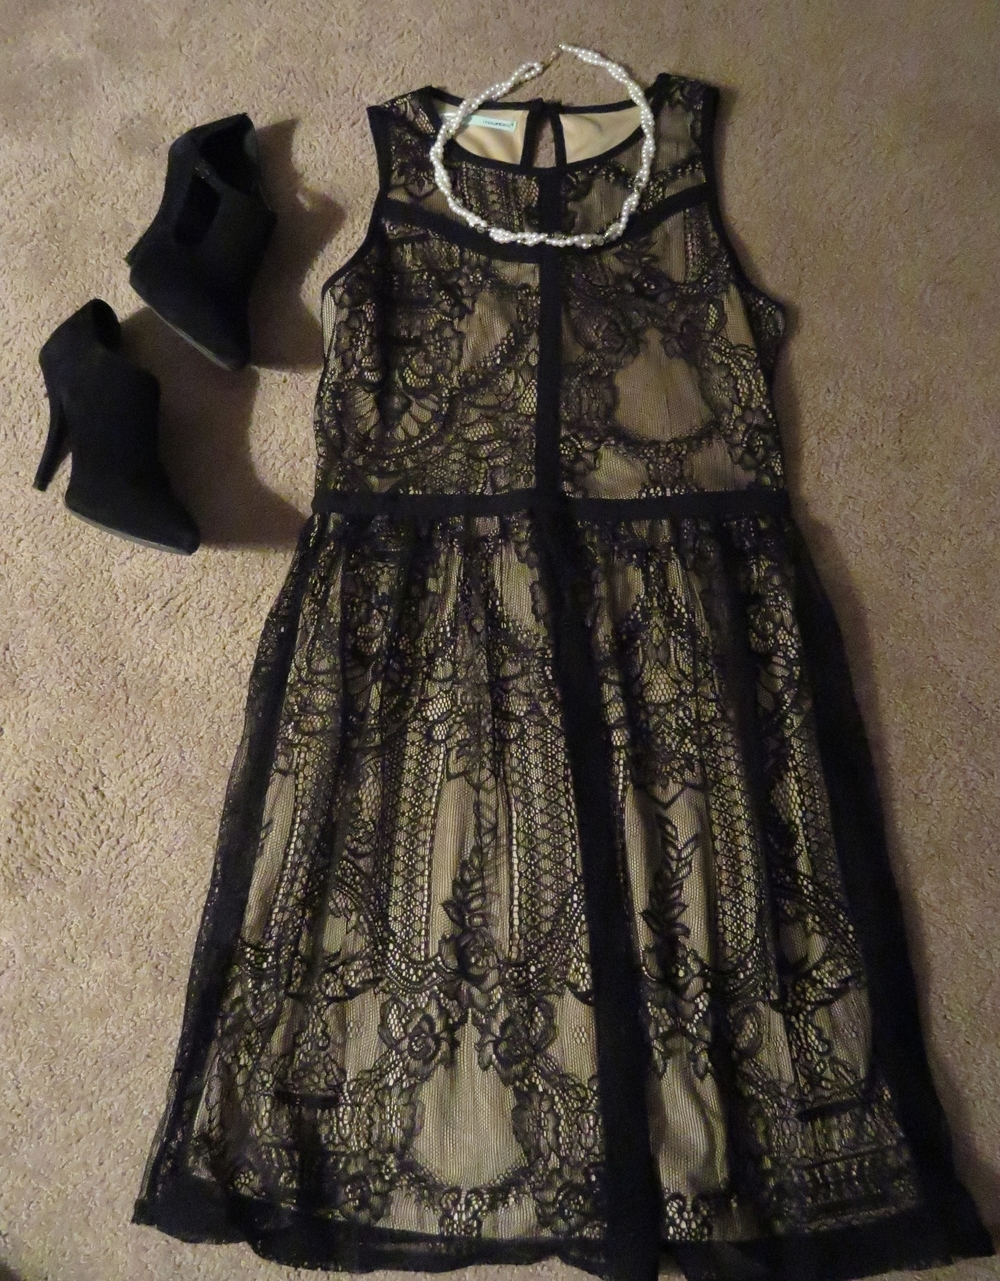 Black lace over tan dress with a sort of 1920's feel from Maurice's. White and black pearl necklace from my grandma. Black Audrey Brooke heel from DSW.